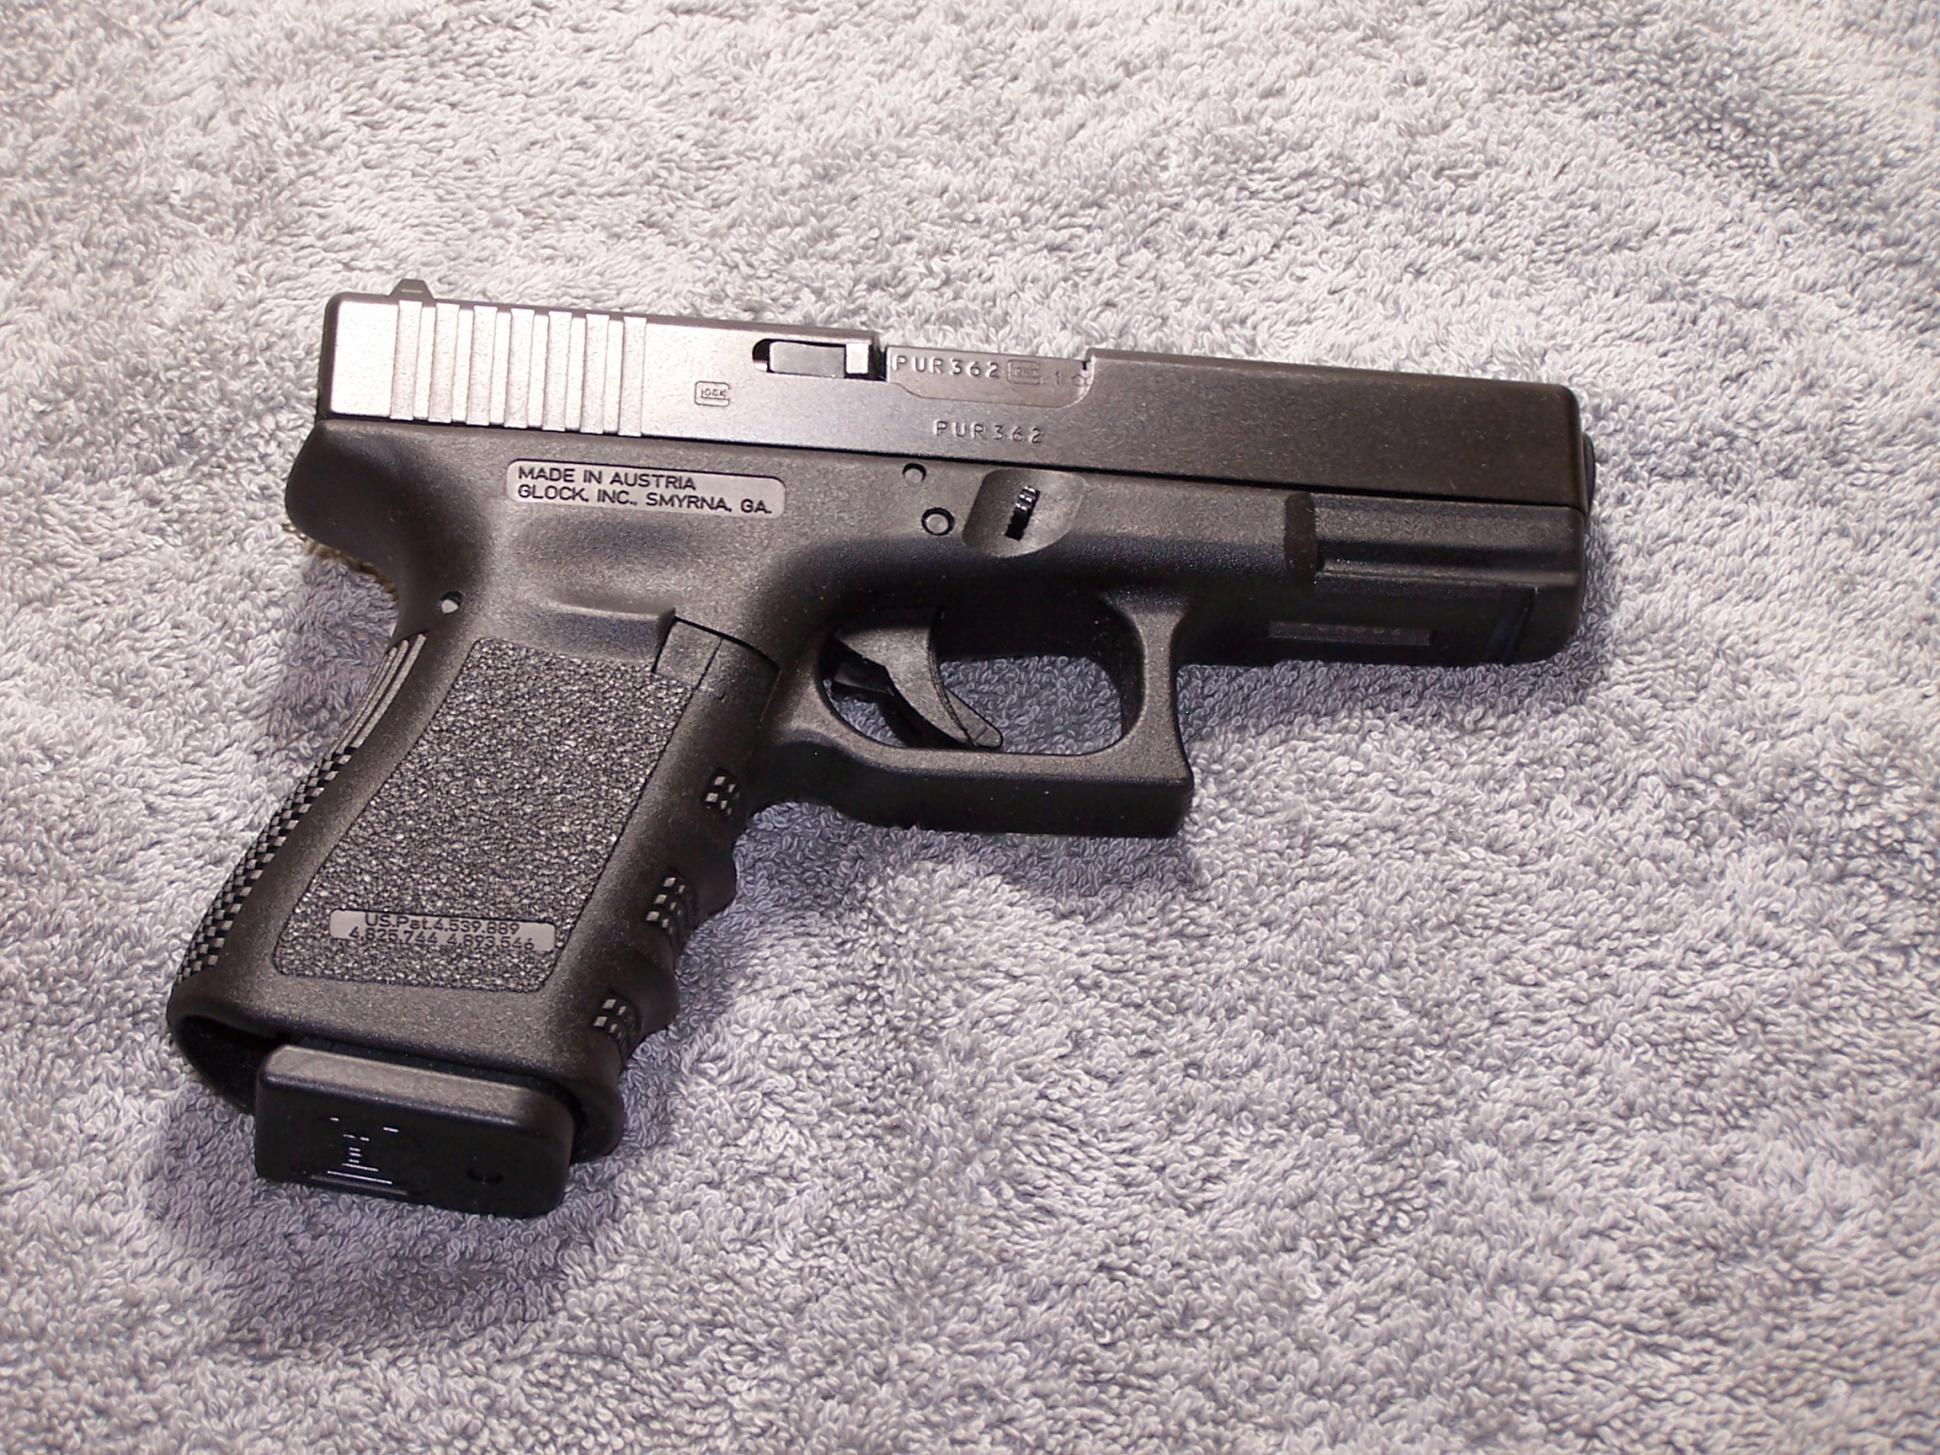 Show your love for the Glock-pur362.jpg